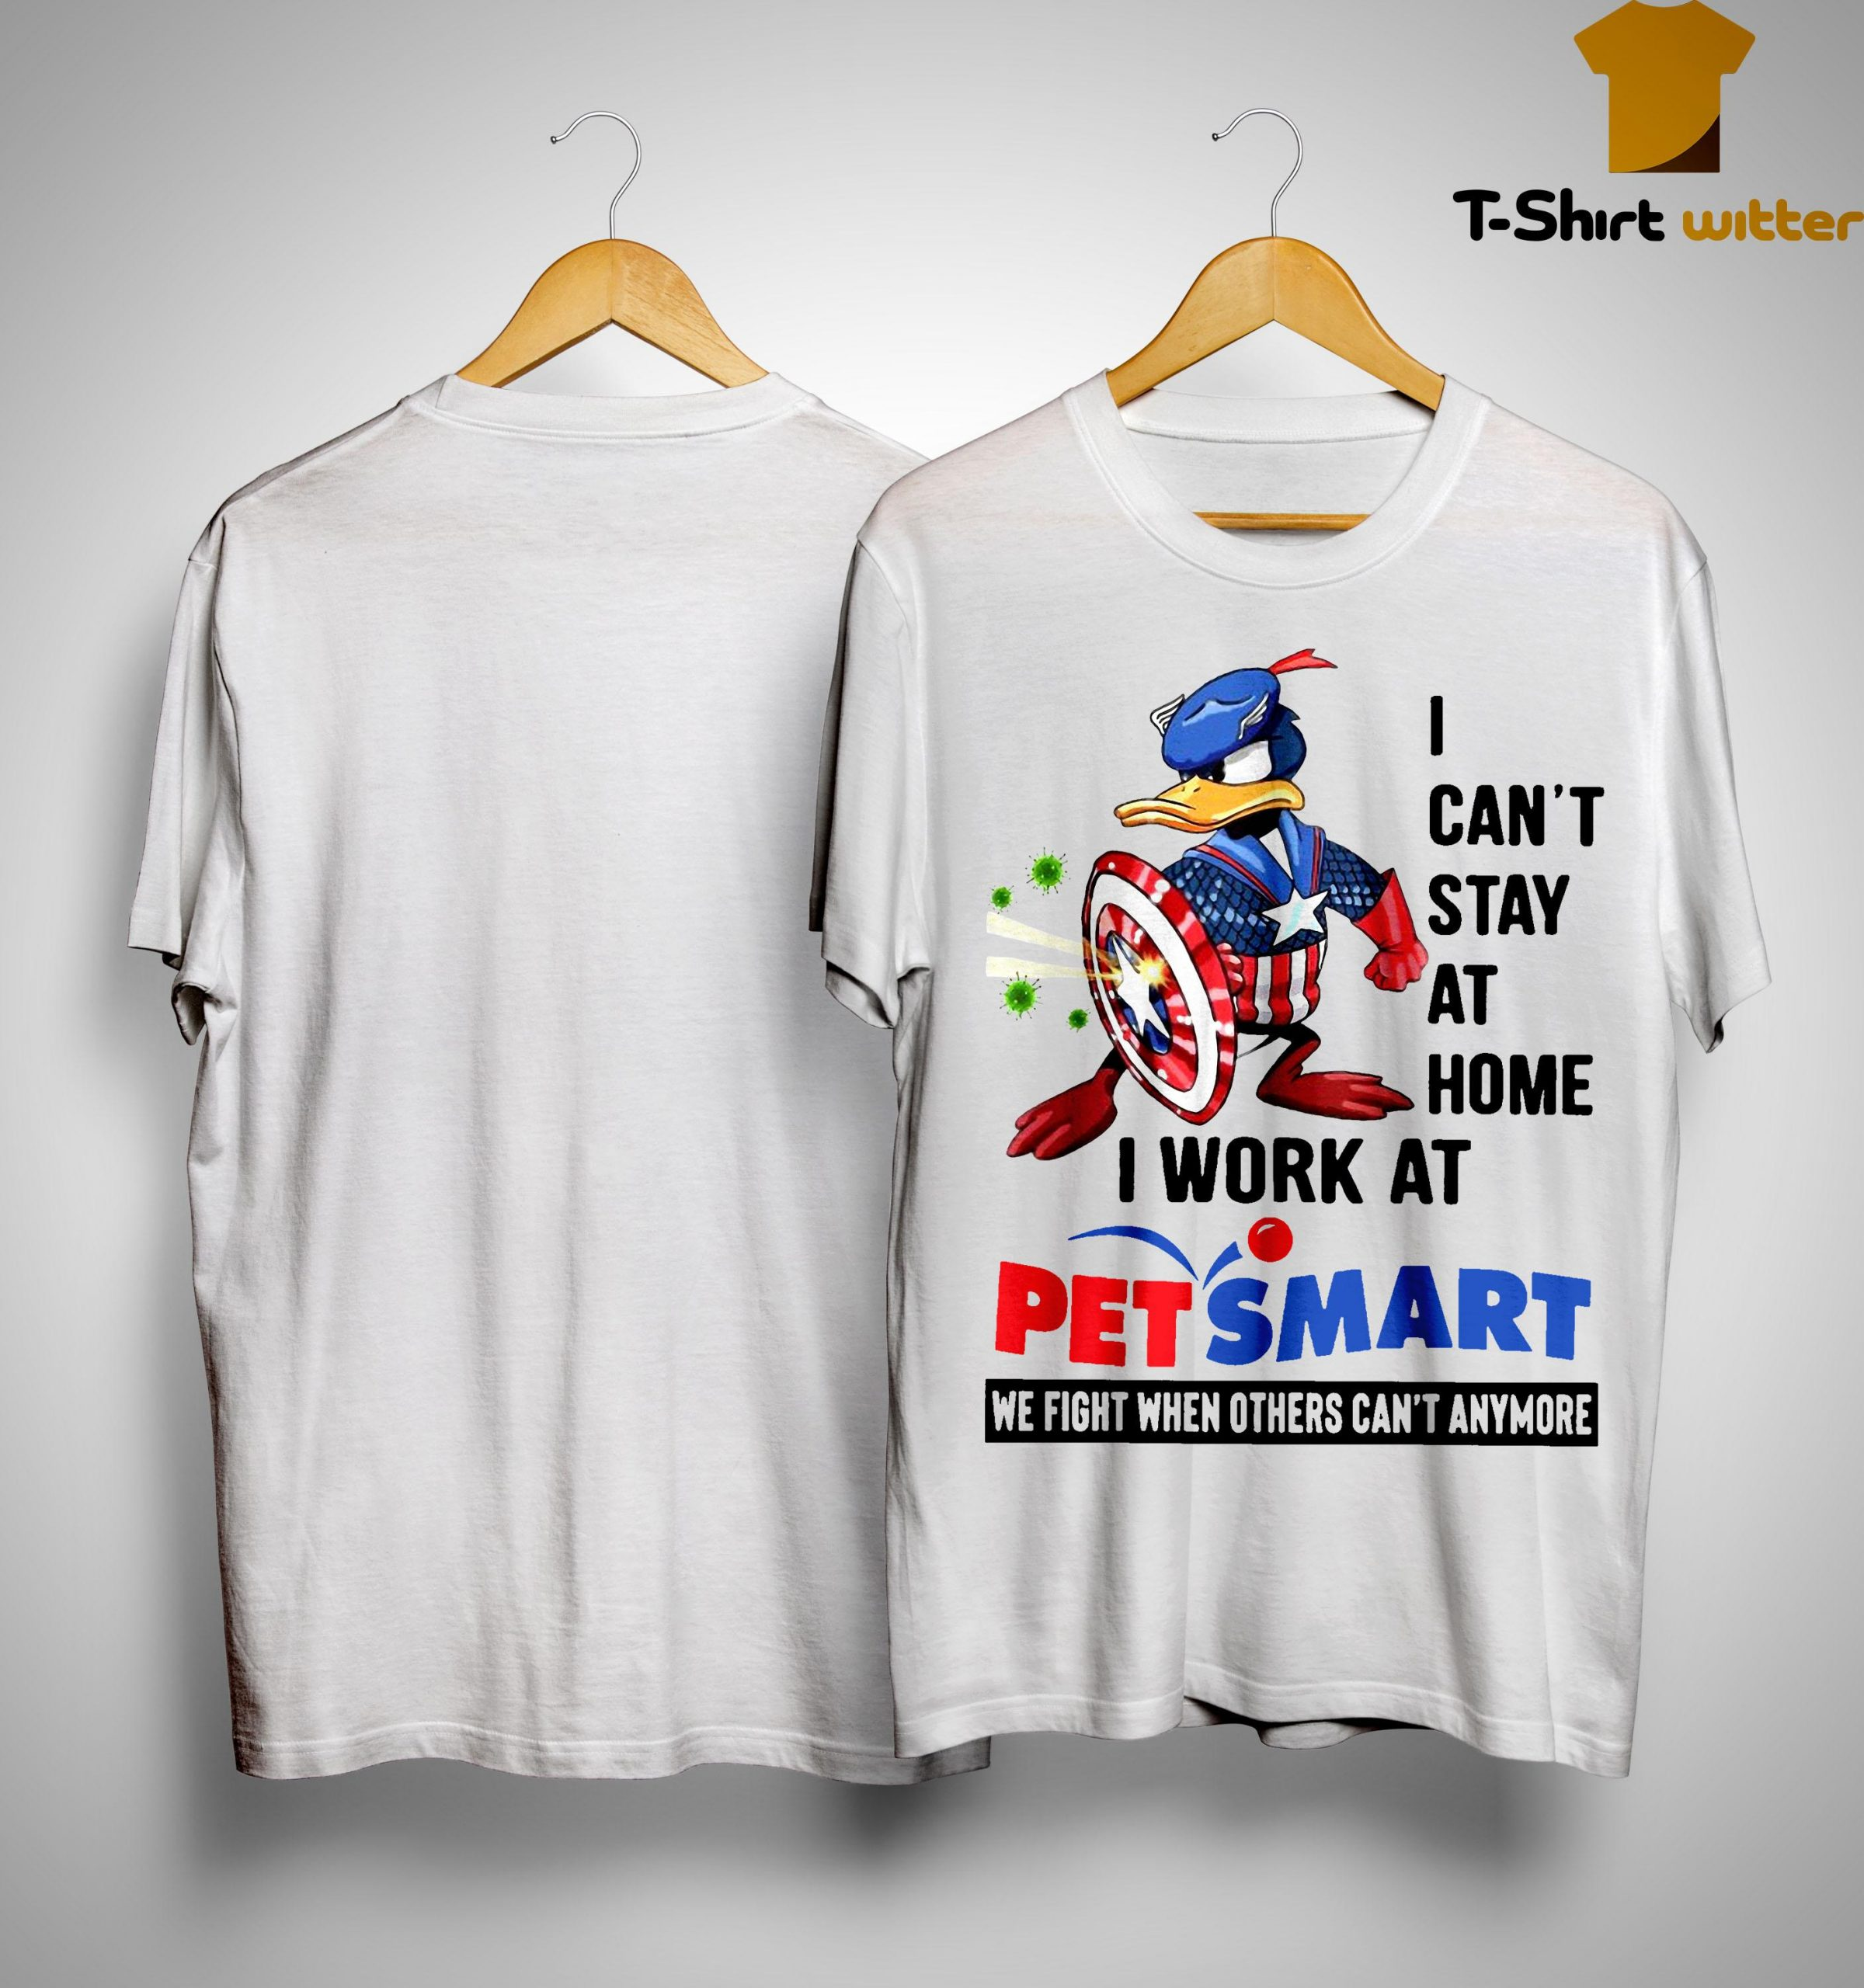 Donald I Can't Stay At Home I Work At Petsmart We Fight Others Can't Anymore Shirt